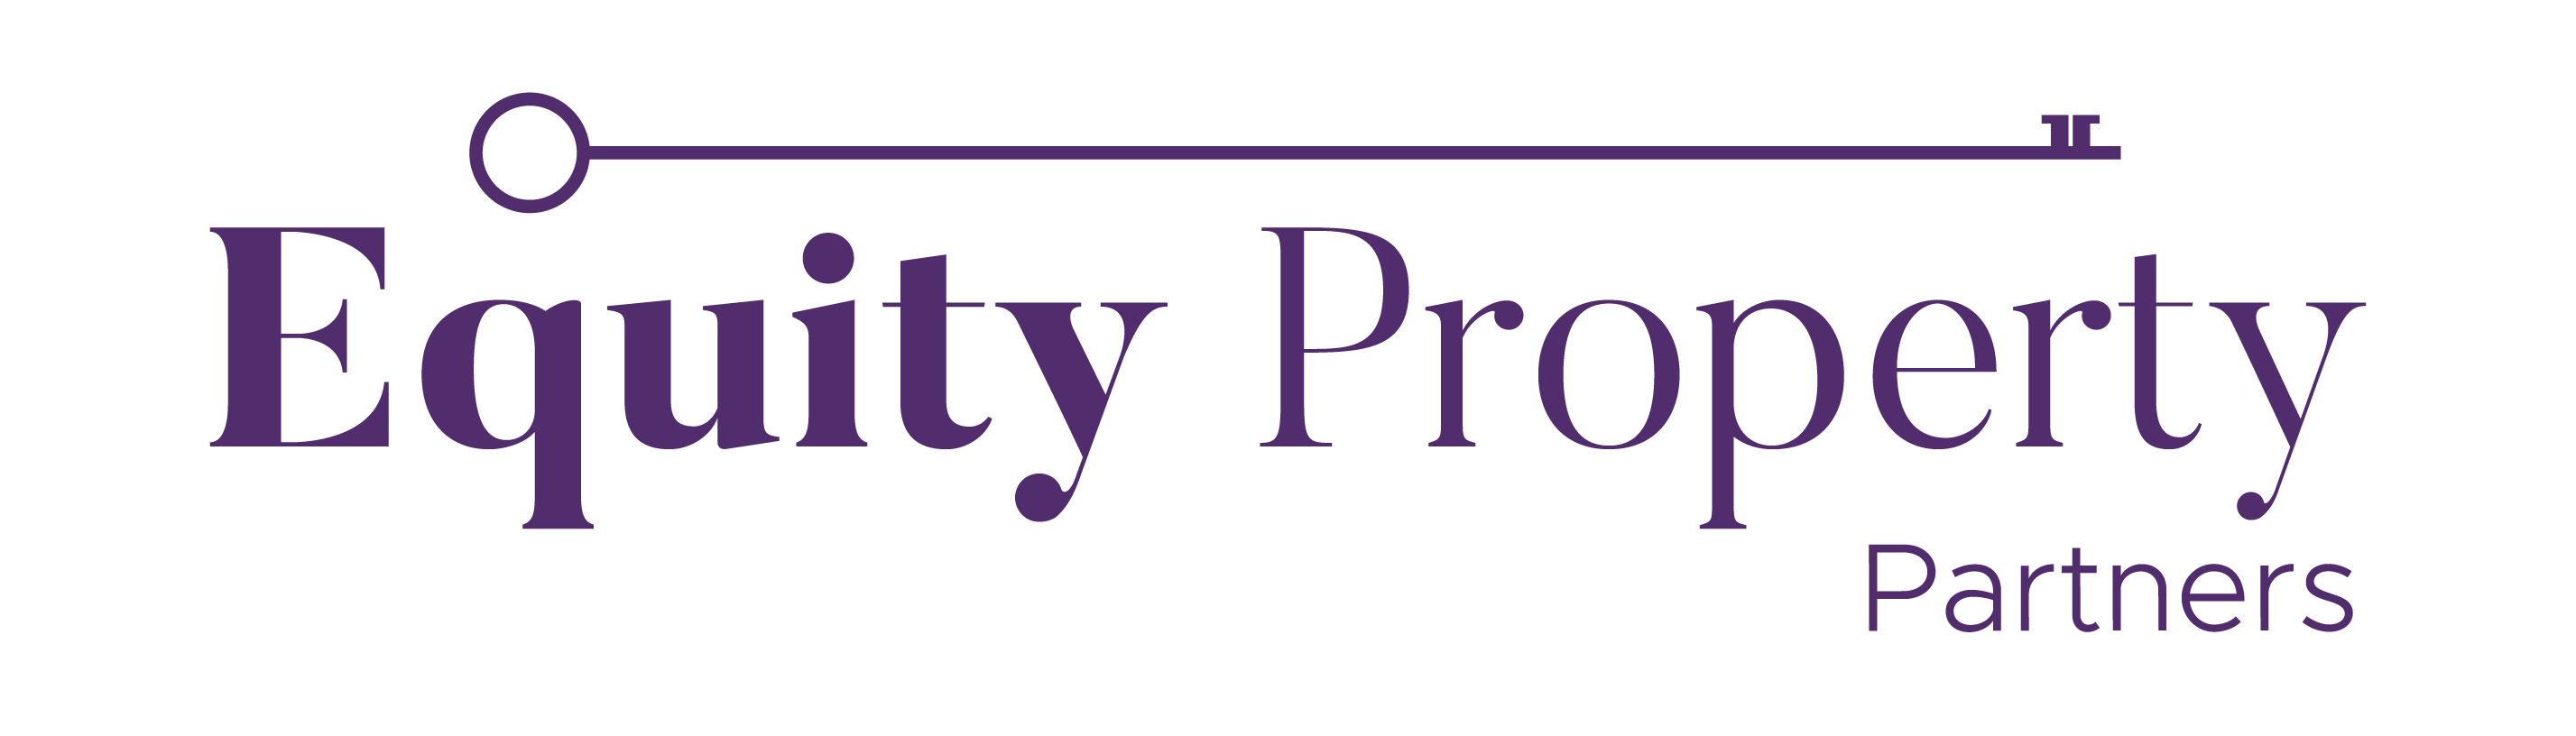 Equity Property